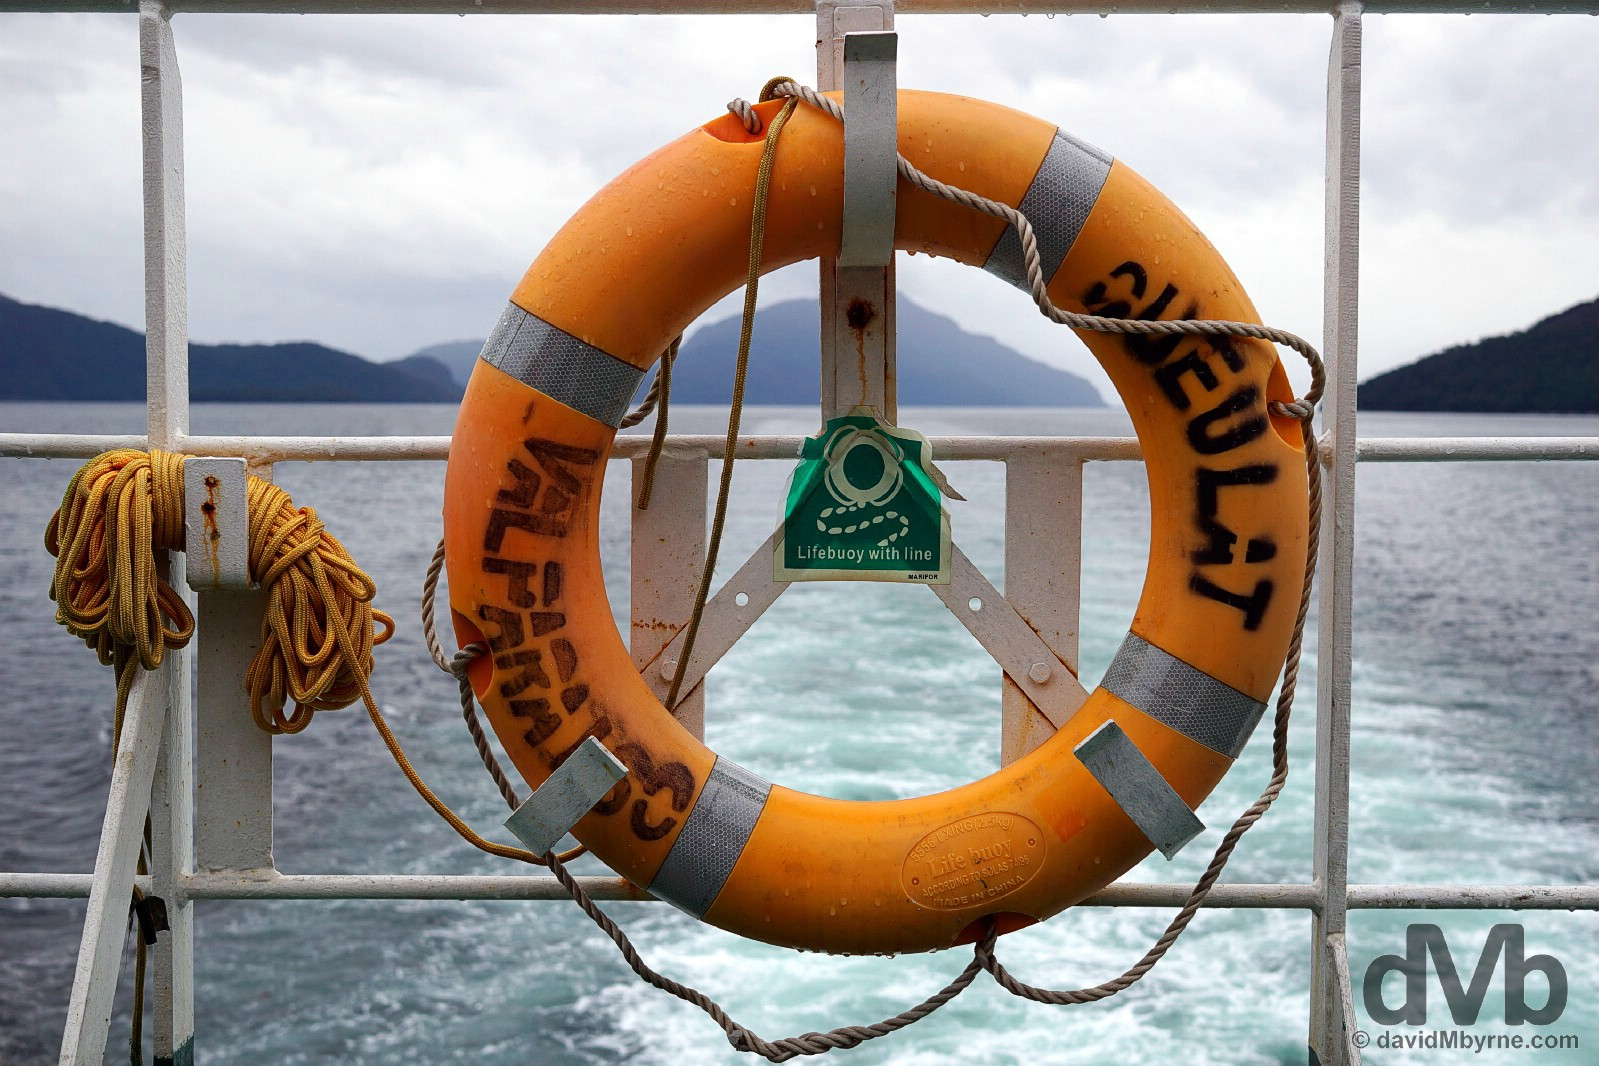 A life ring of the Valparaiso registered Queulat (slowly) plying the Canal Moraleda en route from Quellon, Chiloe, to Puerto Chacabuco, Chile. October 25, 2015.